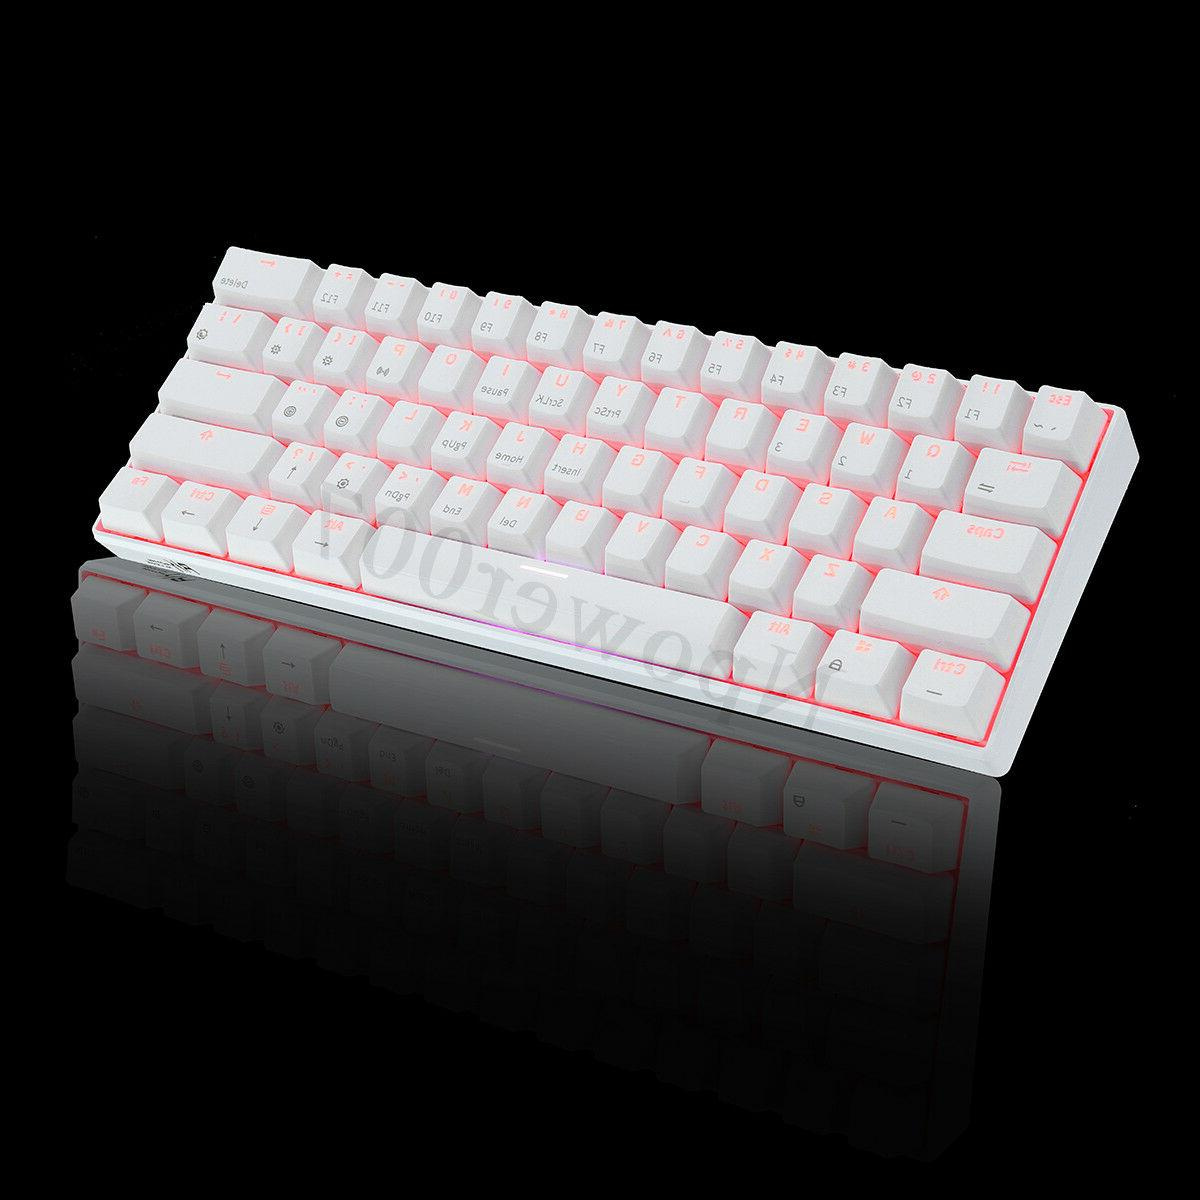 Anne Pro Brown bluetooth